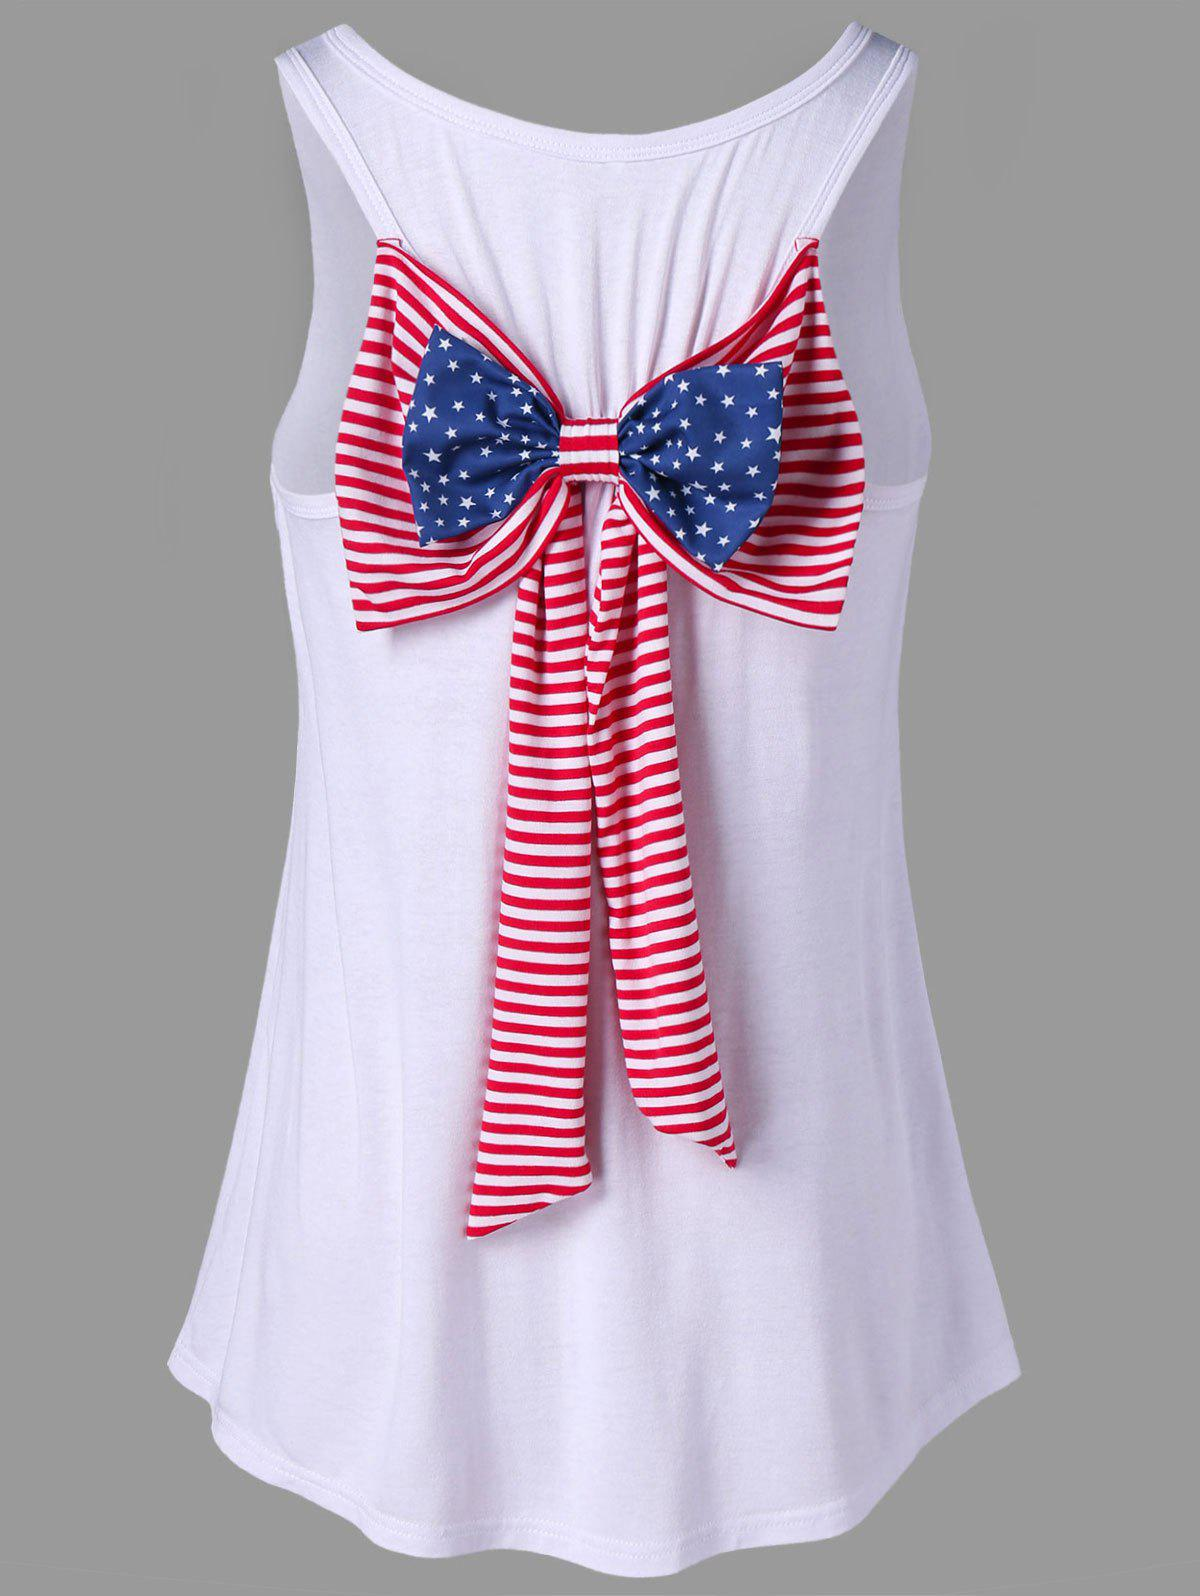 Fancy American Flag Bowknot Embellished Racerback Tank Top